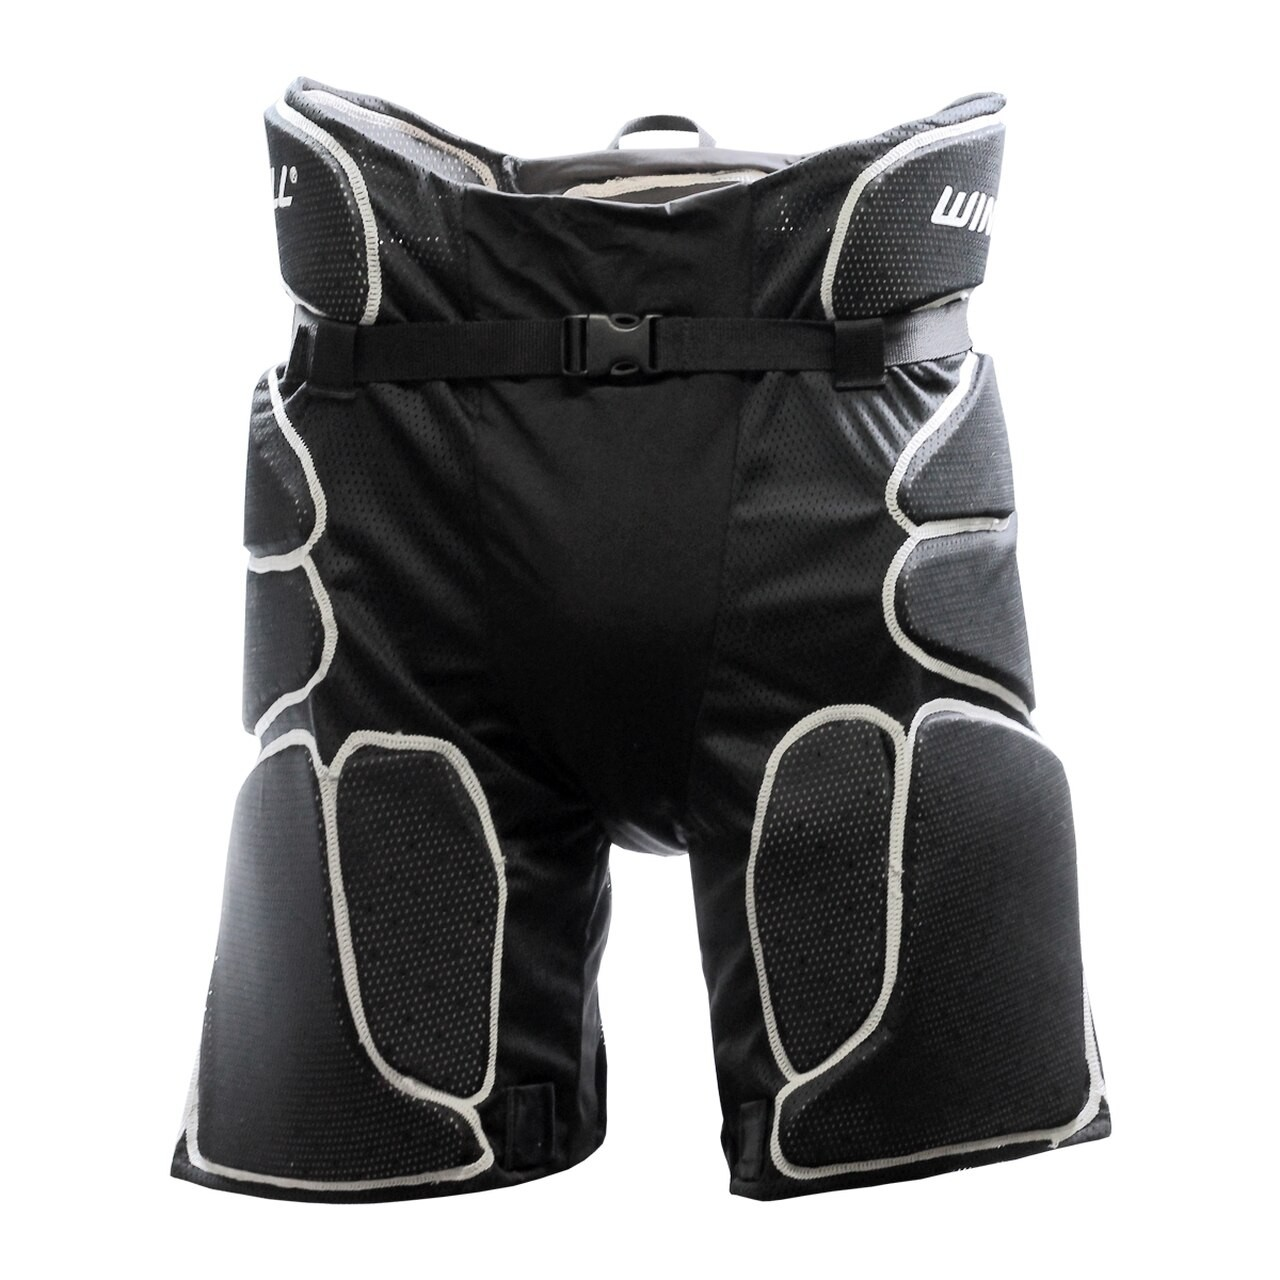 WINNWELL Senior Basic Roller Hockey Girdle